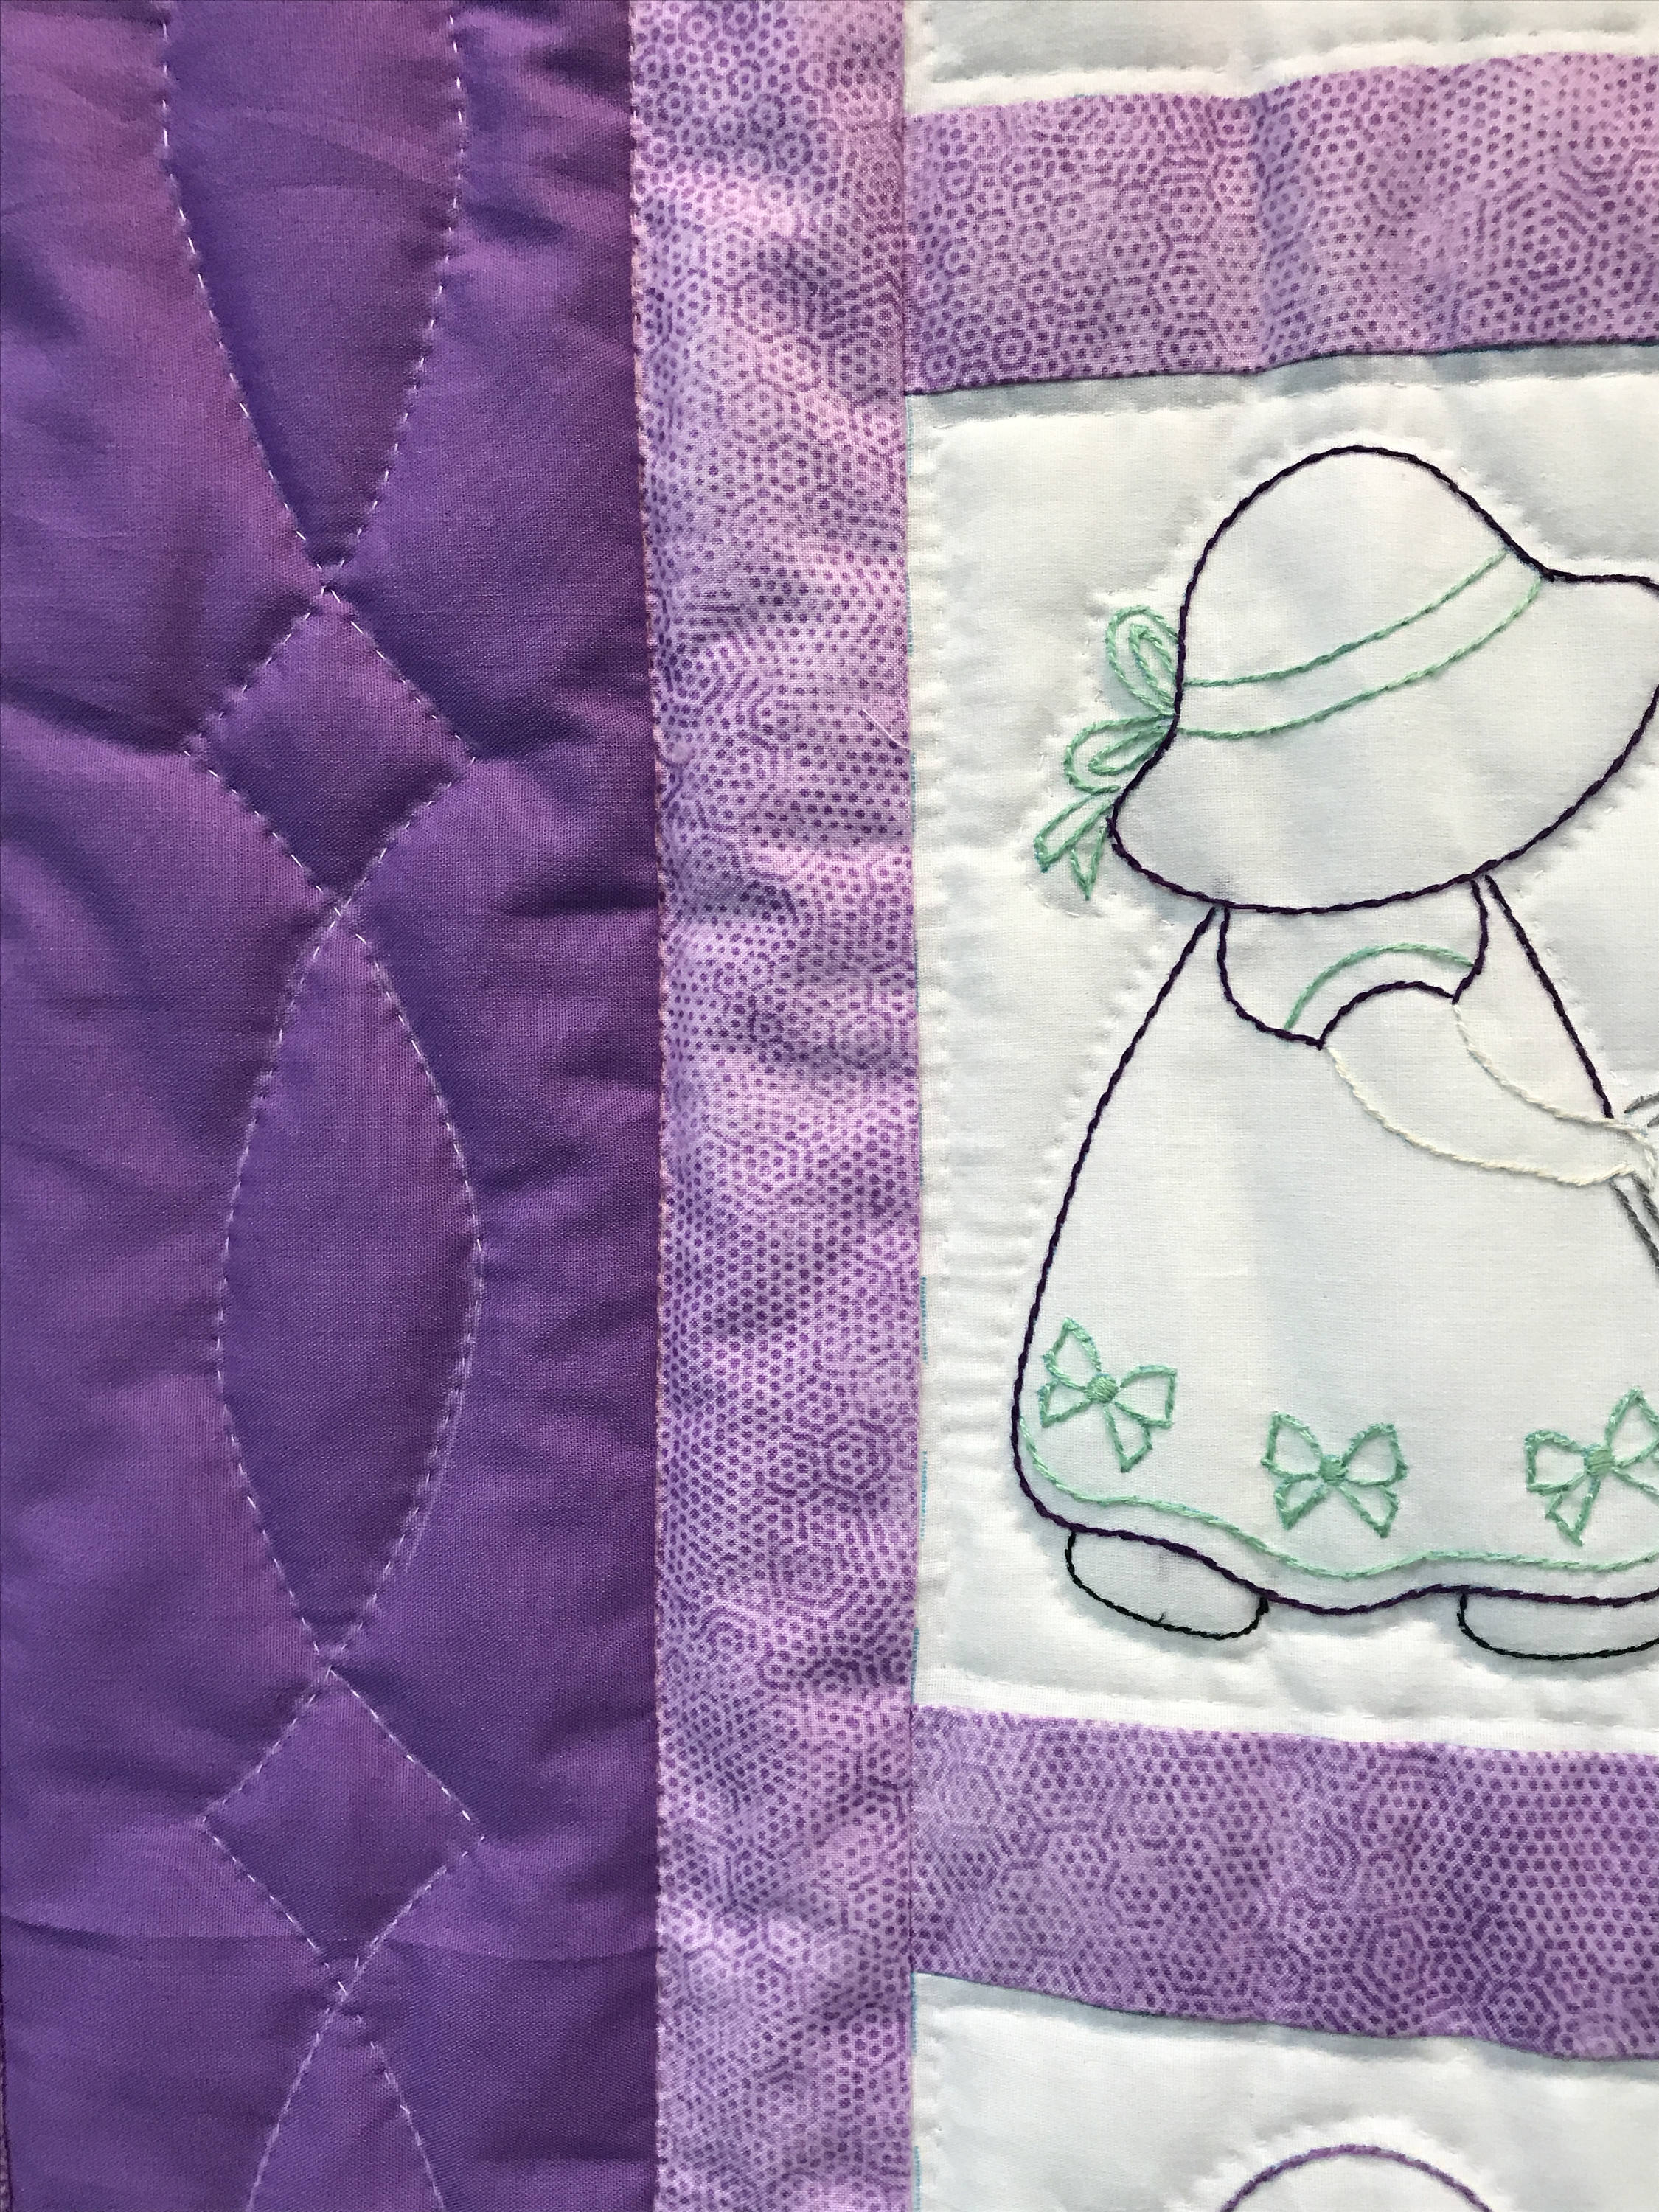 Sun Bonnet Sue Lavendar Baby Blanket Quilt Hand Quilted Purple Hand Sewn Amish Made 41x51